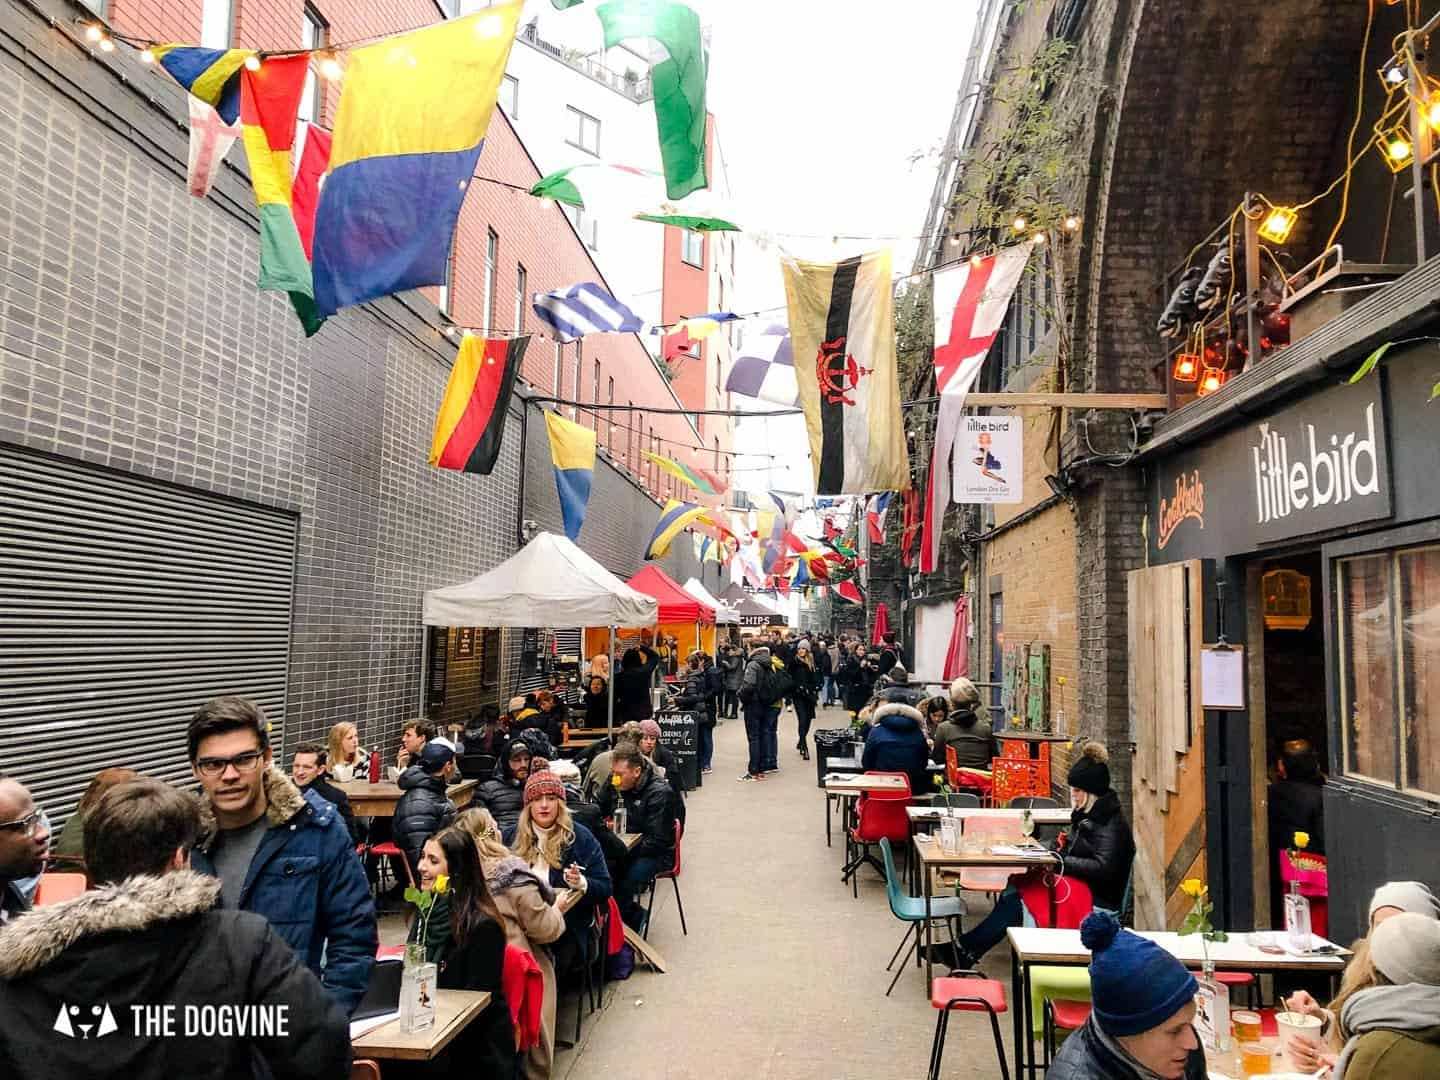 Best Dog-friendly Street Food Markets and Halls in London - Maltby Street Market